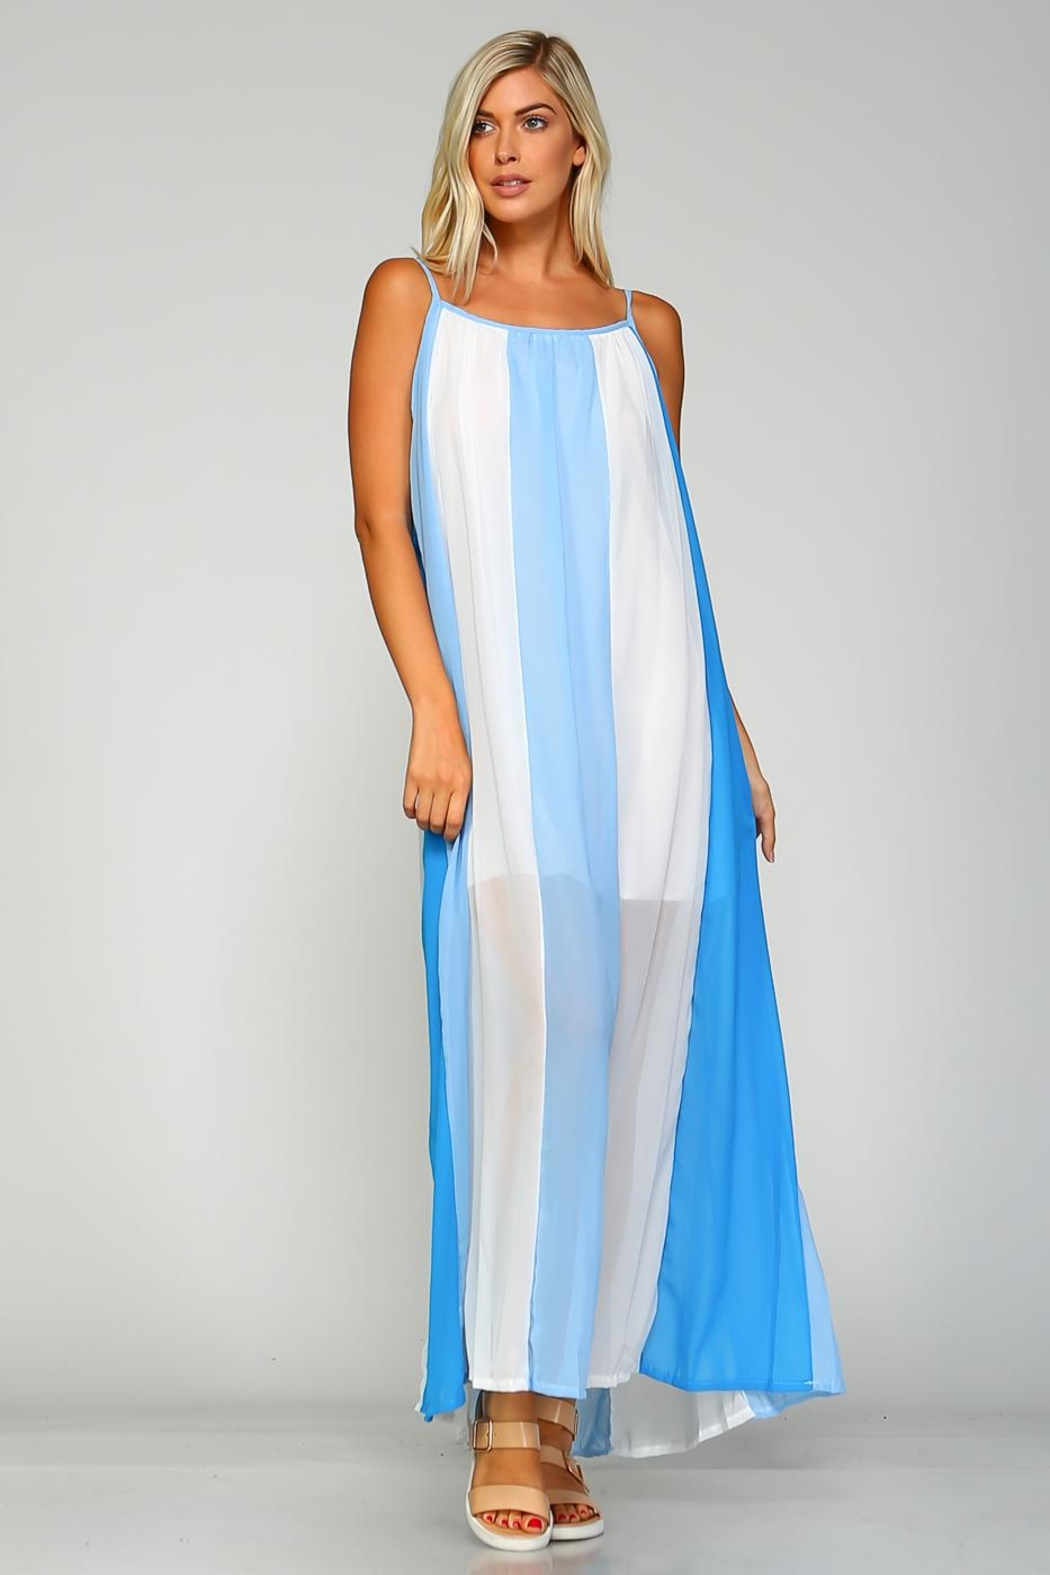 bc06d8322176 Racine Striped Maxi Dress from California by Racine Love — Shoptiques